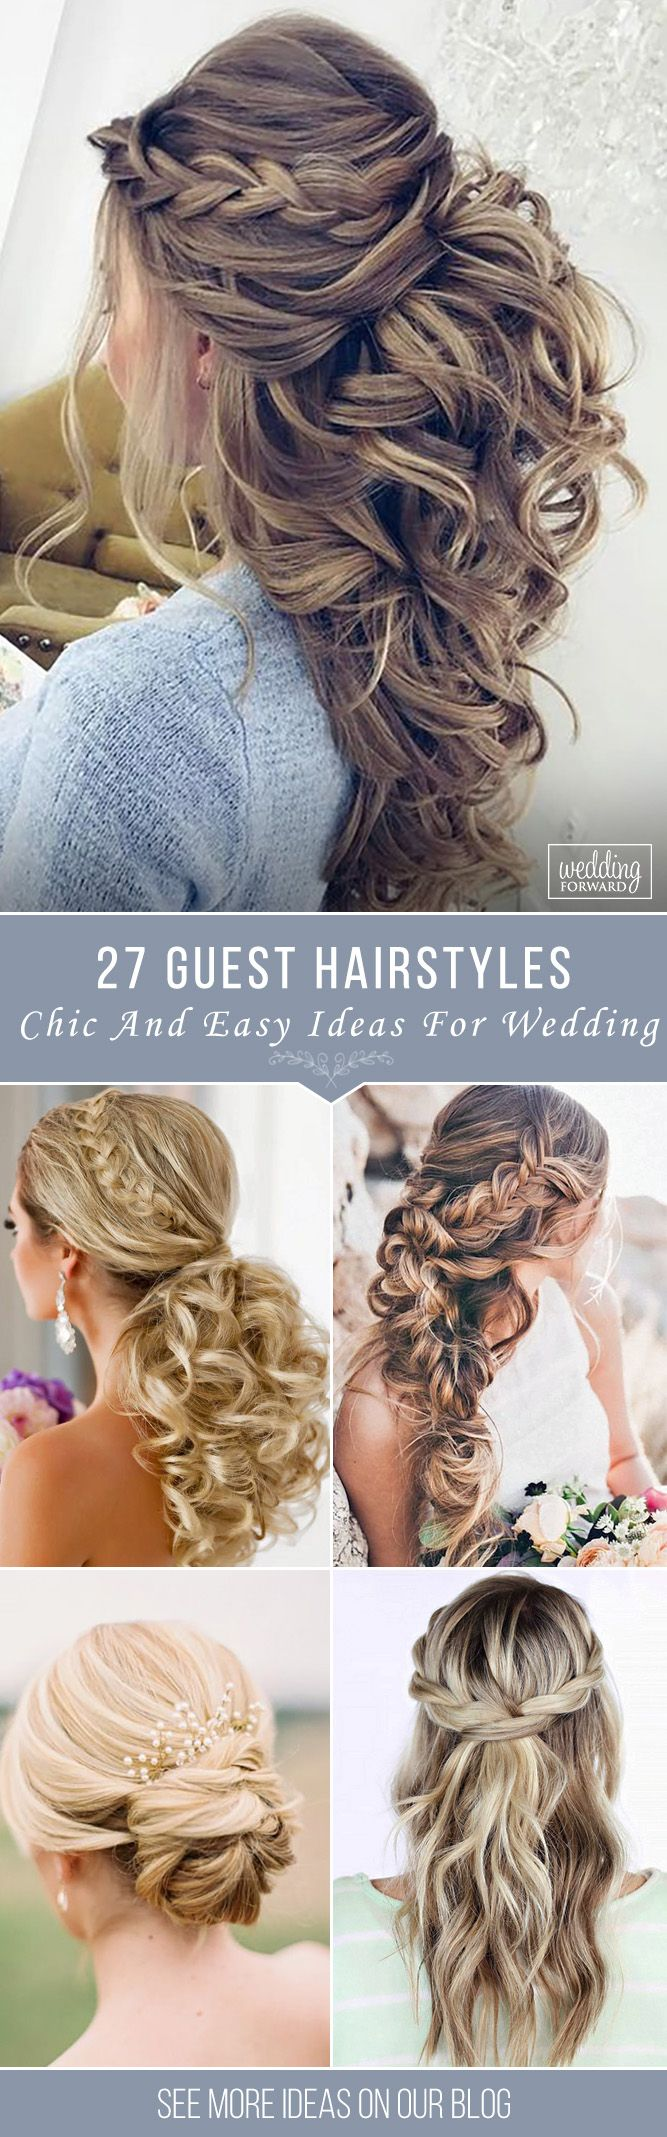 Awe inspiring pinterest the world39s catalog of ideas updo hairstyles - 27 Chic And Easy Wedding Guest Hairstyles